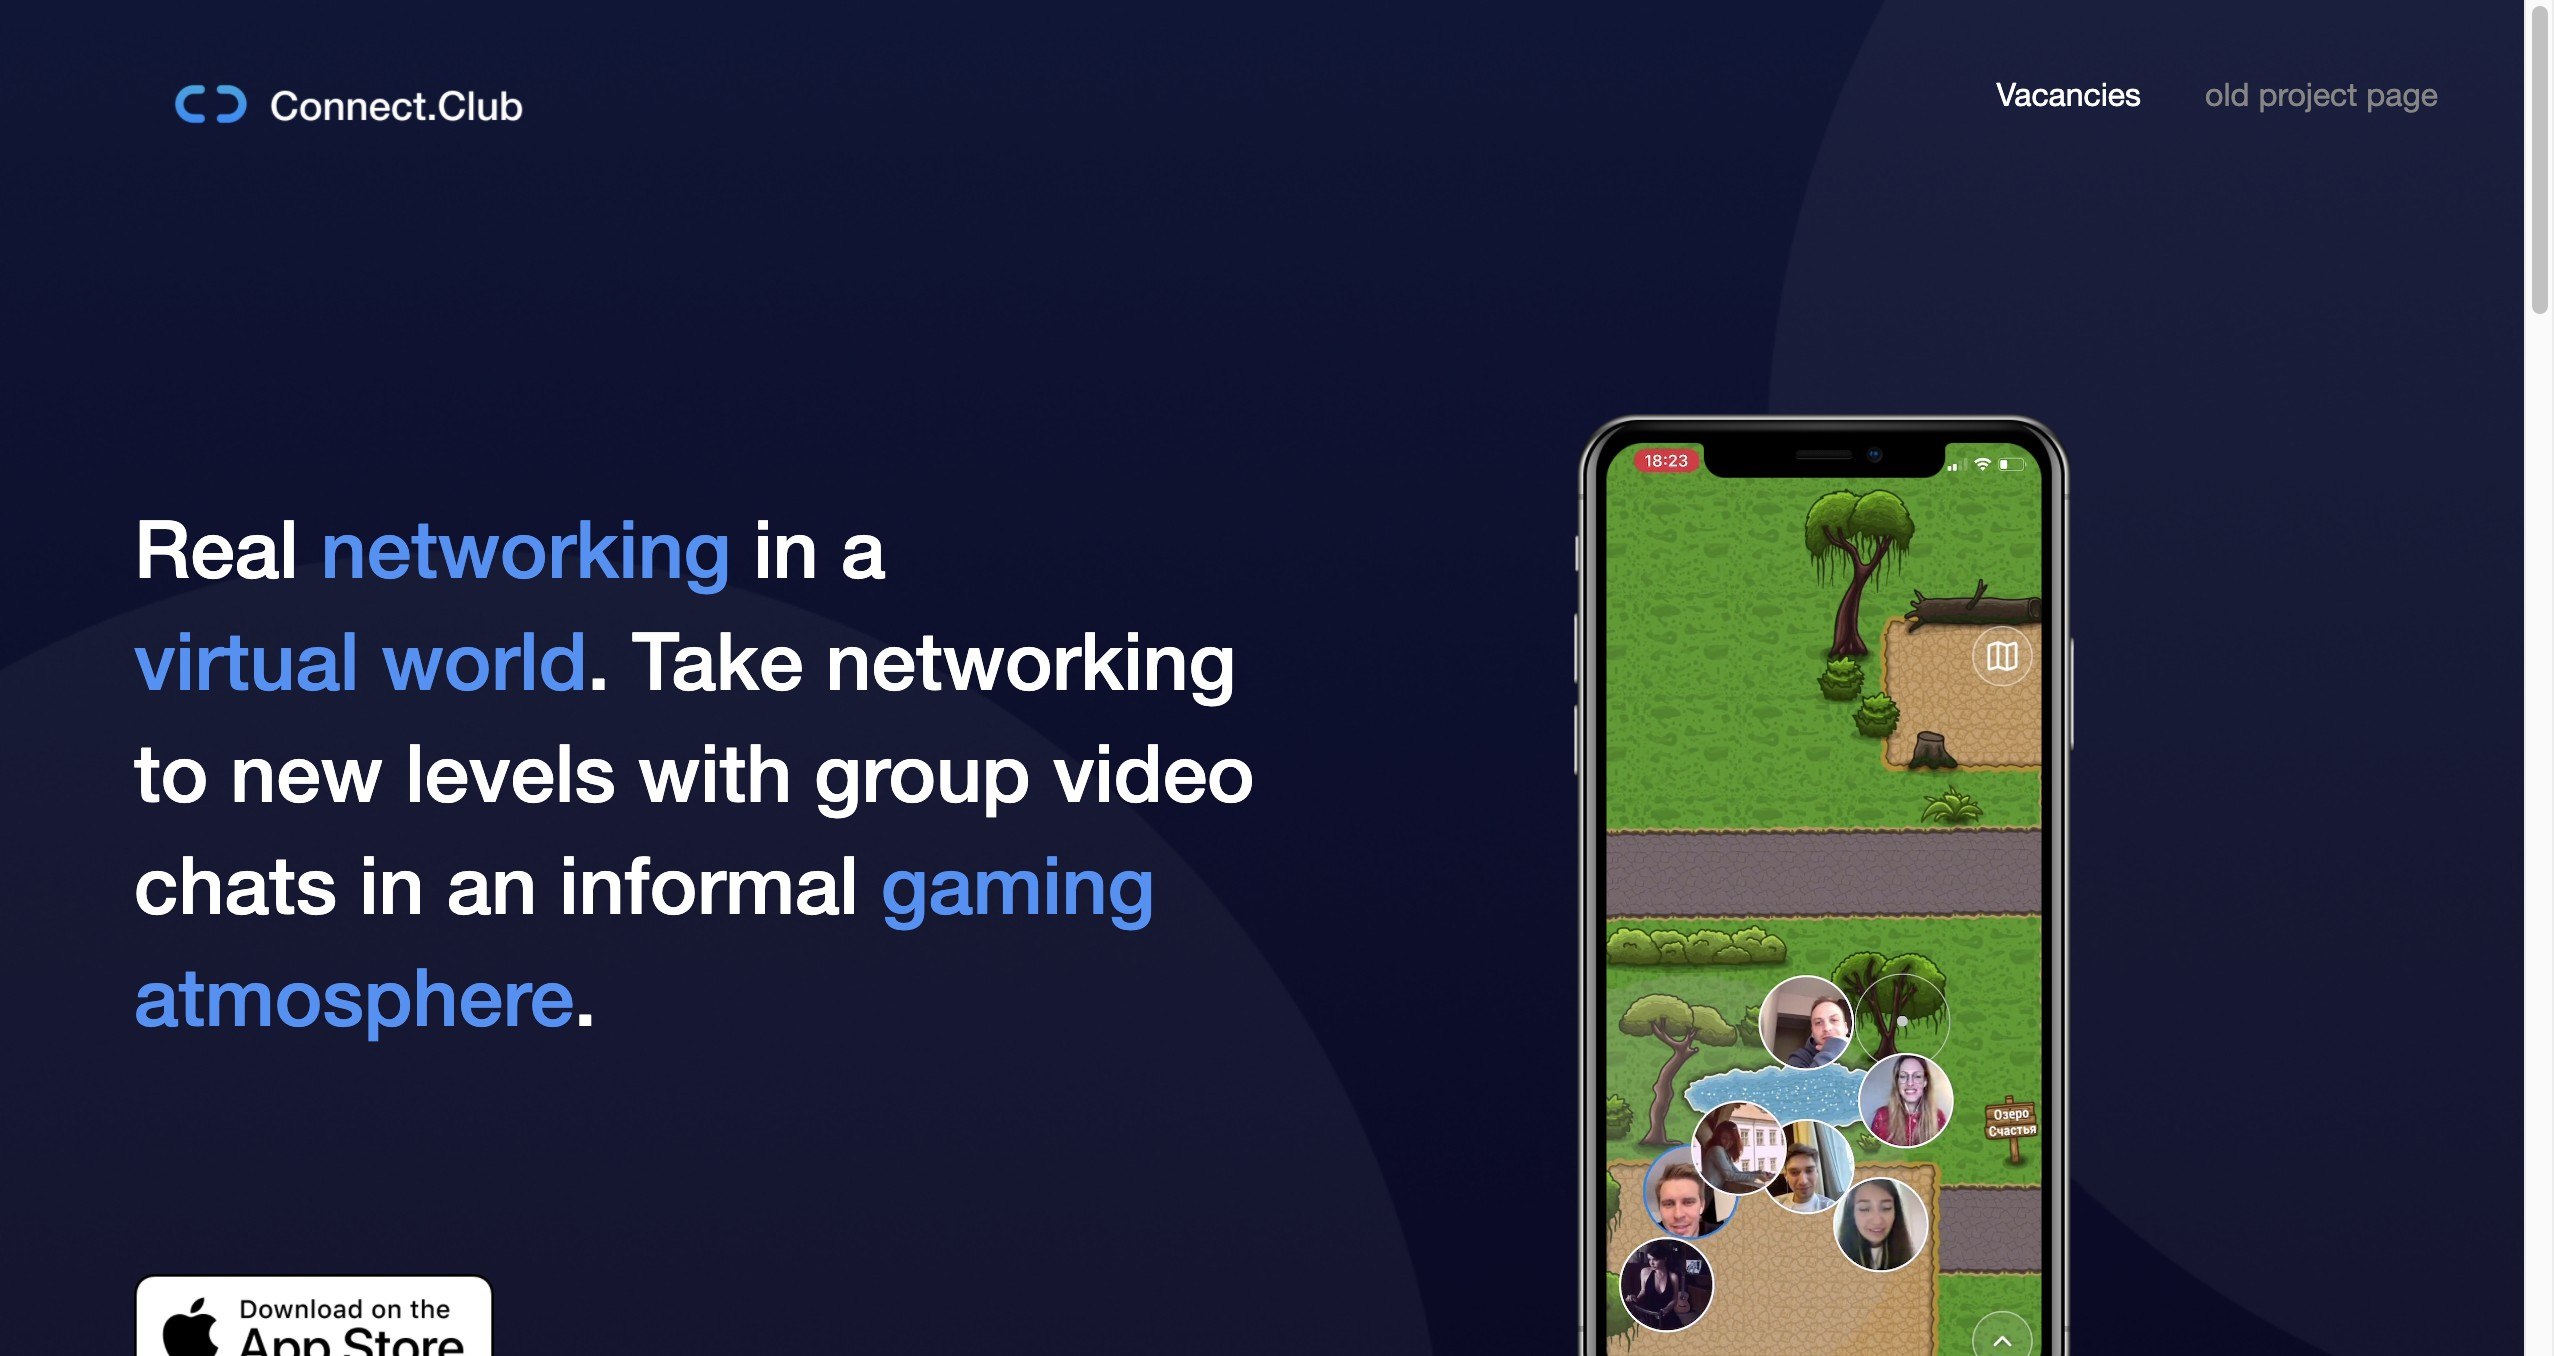 Connect.club - Real networking in a virtual world.